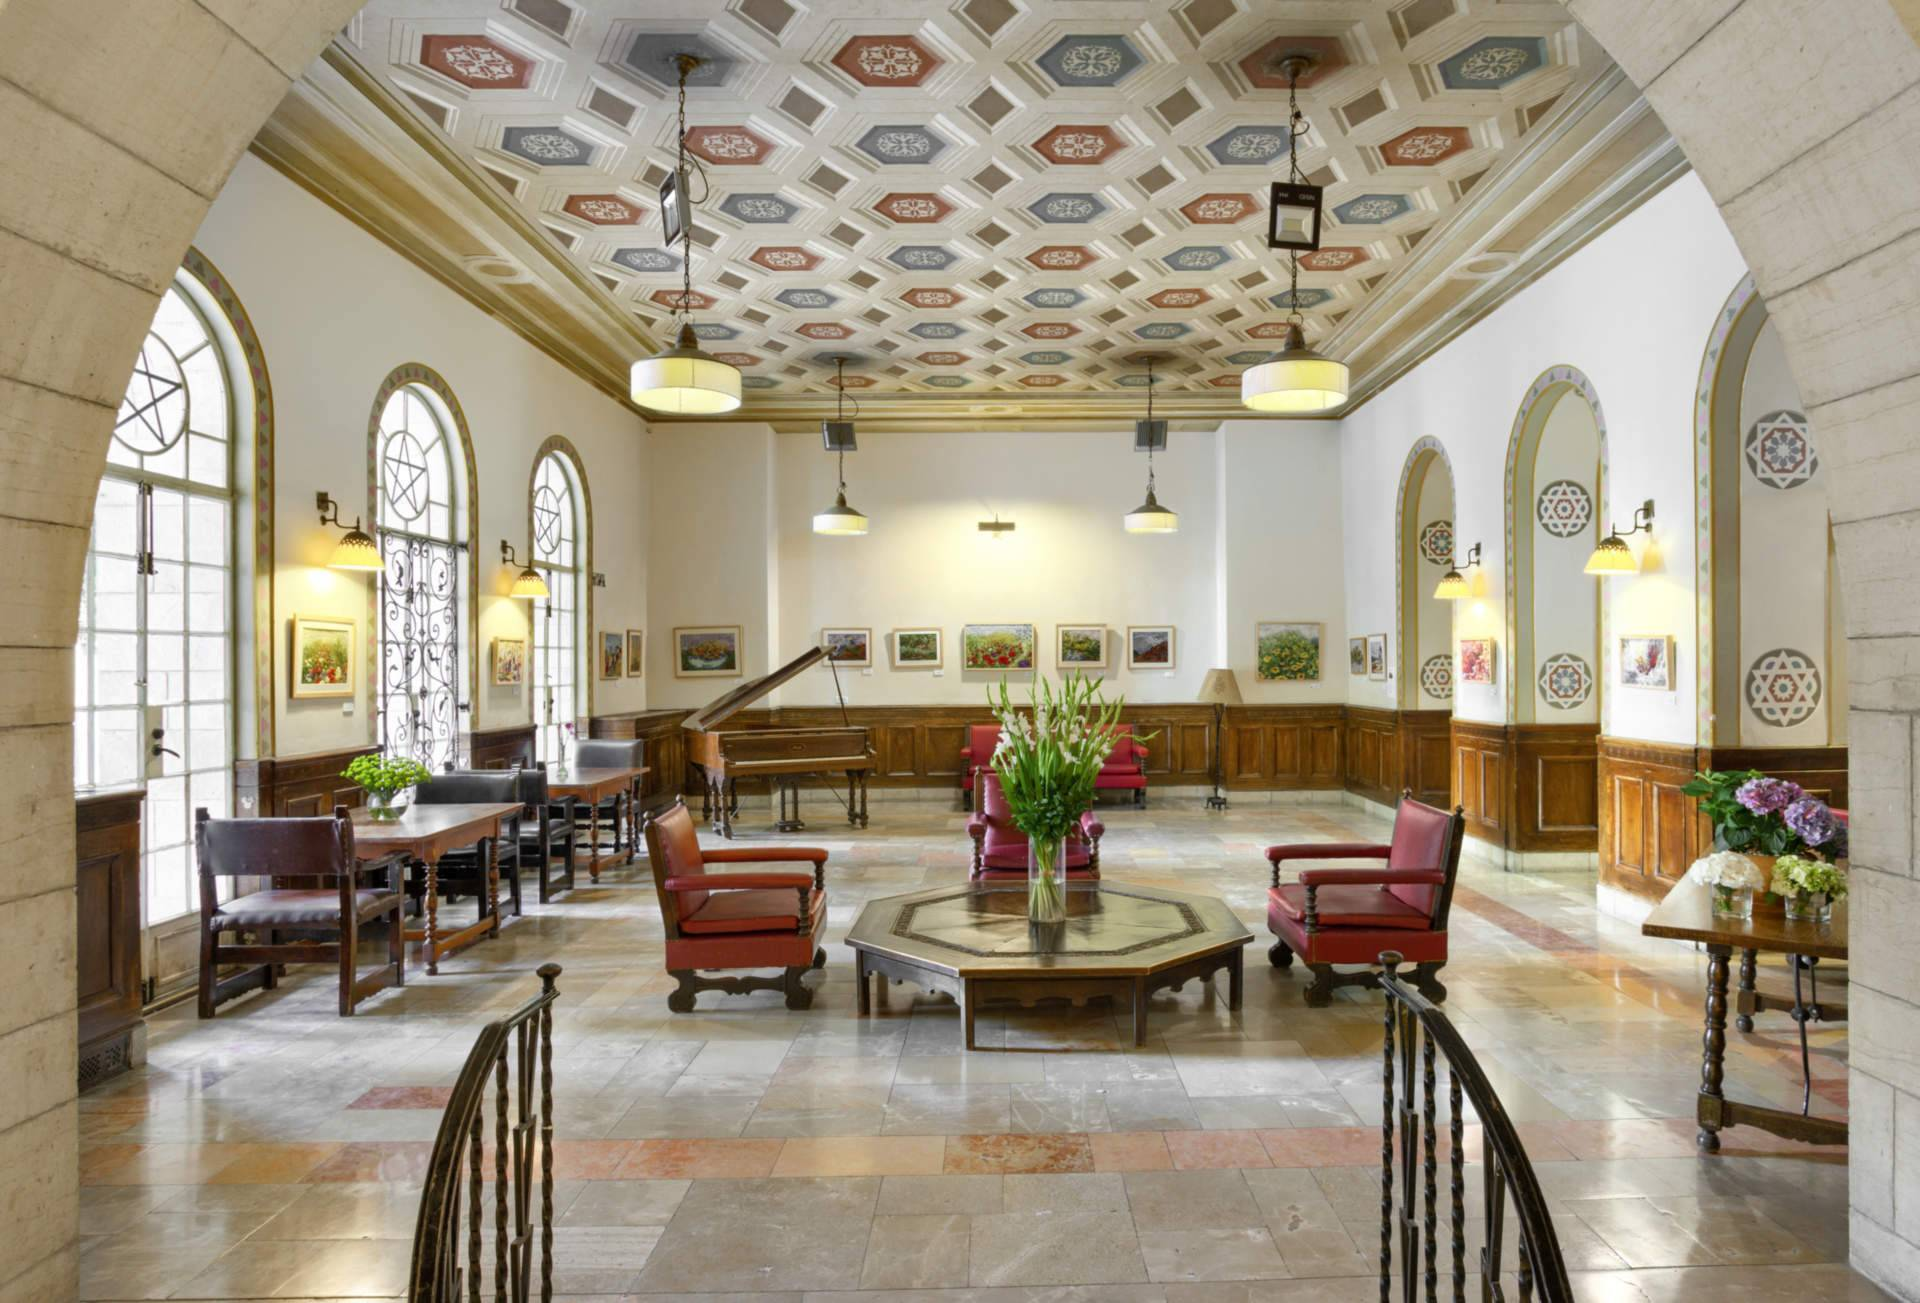 Top hotels in Jerusalem | YMCA 3 arches